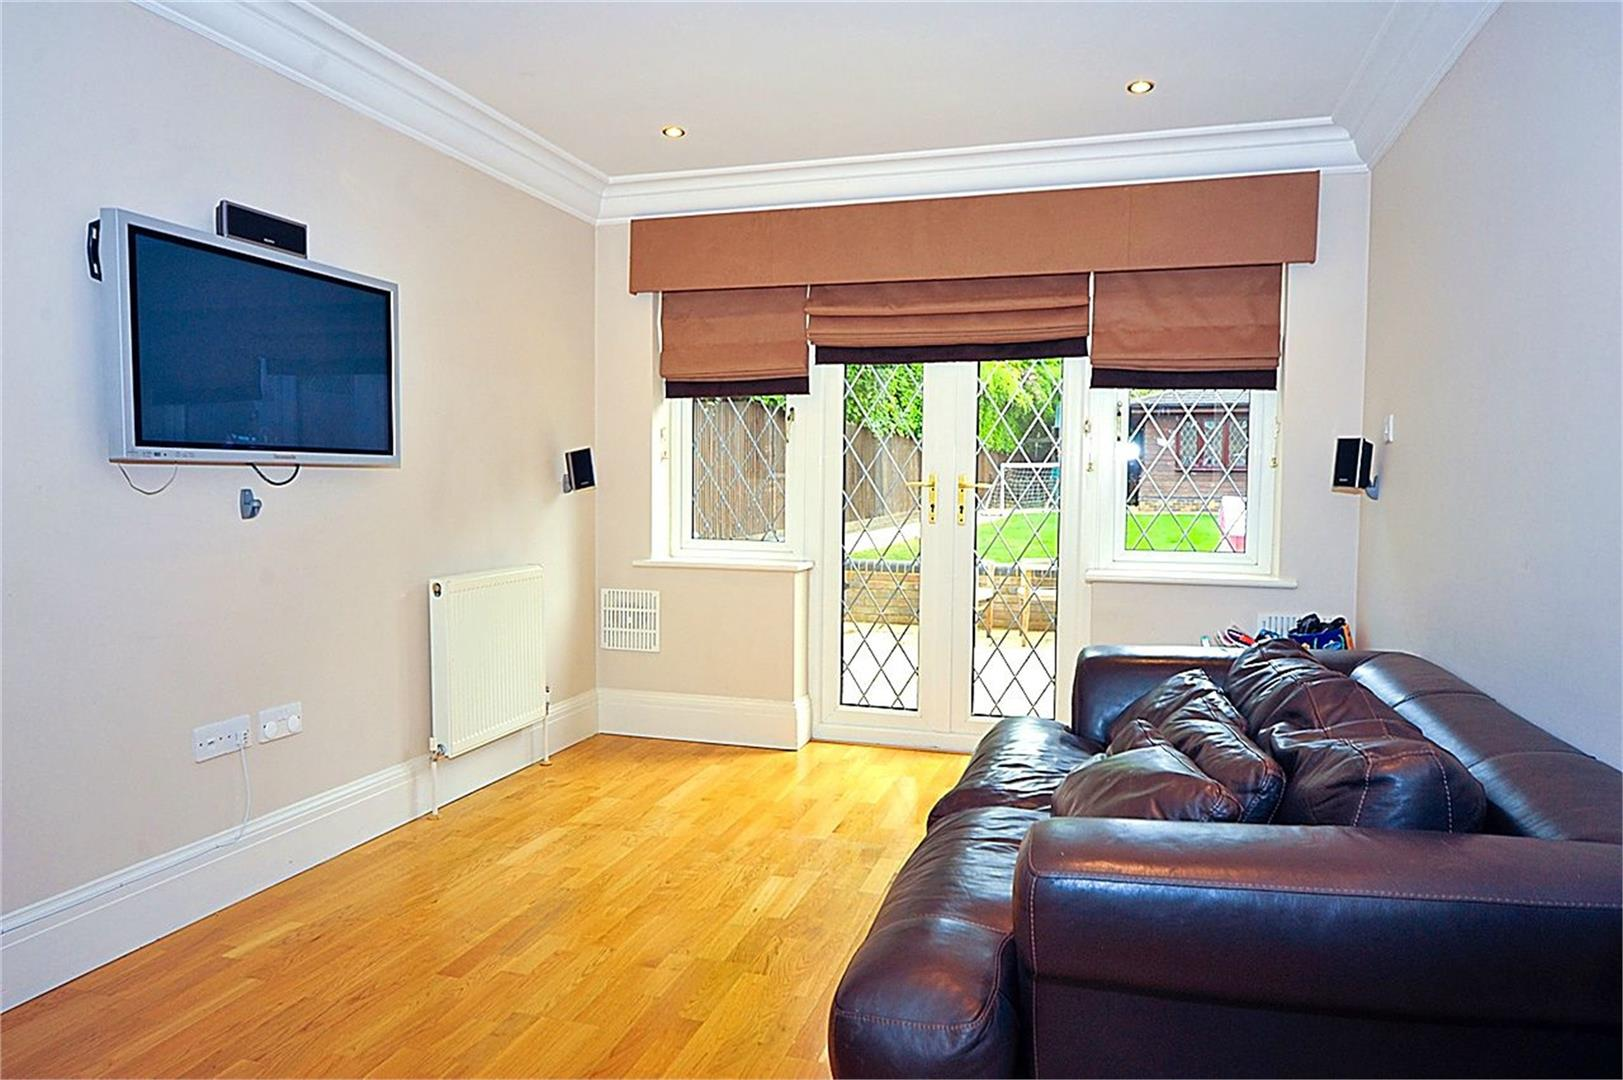 5 bed to rent - (Property Image 4)